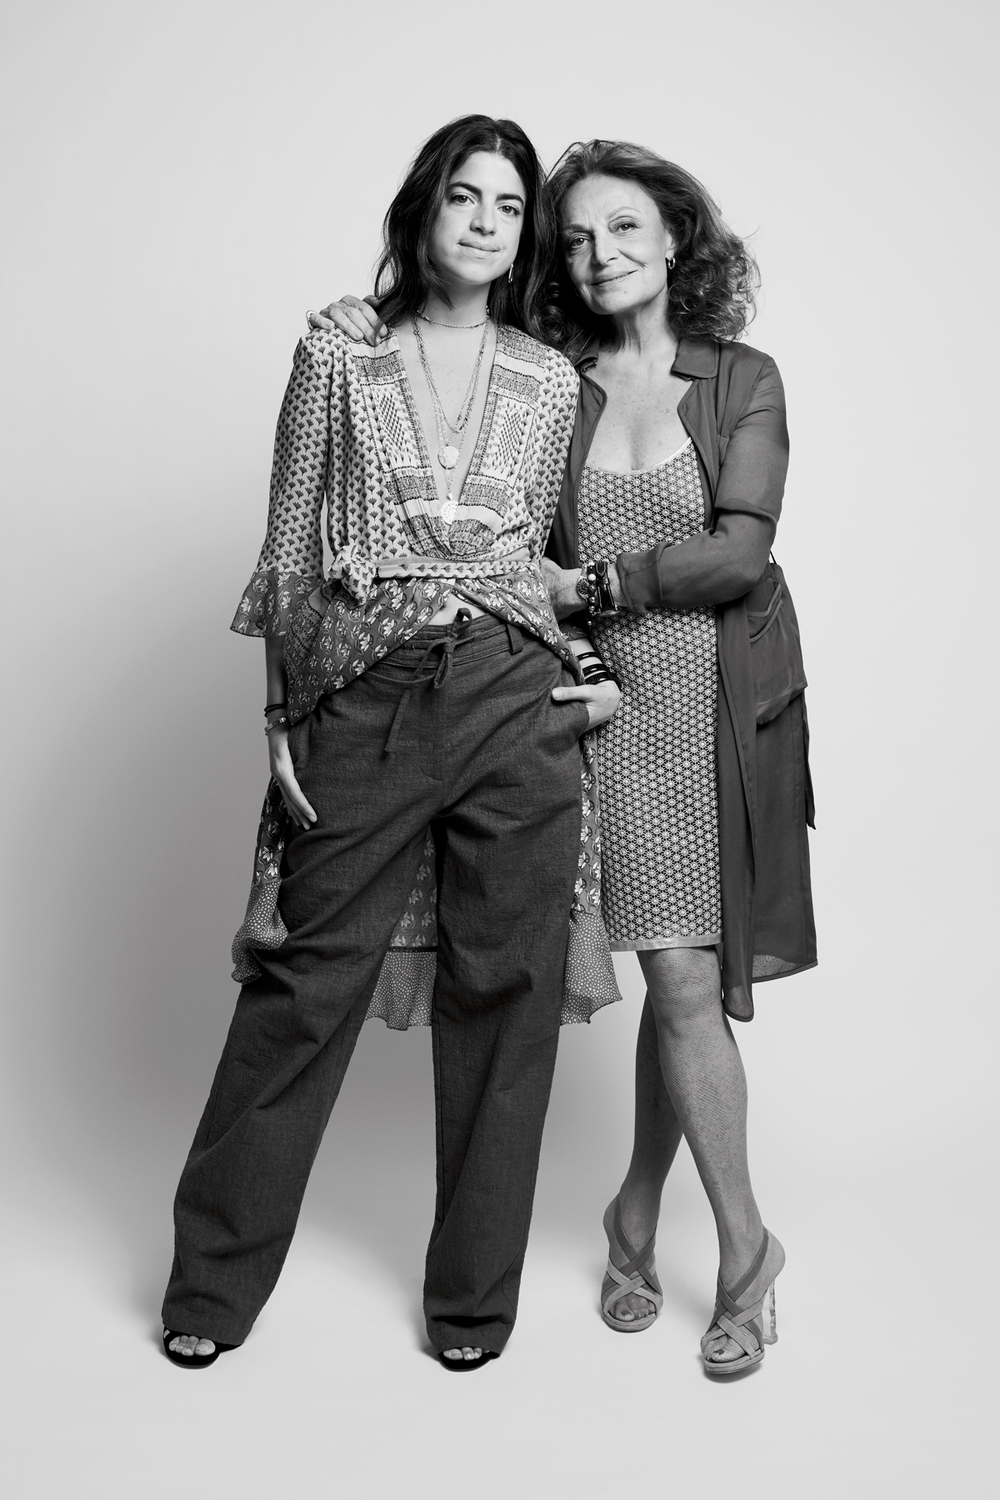 DIANE VON FURSTENBERG & THE MAN REPELLER